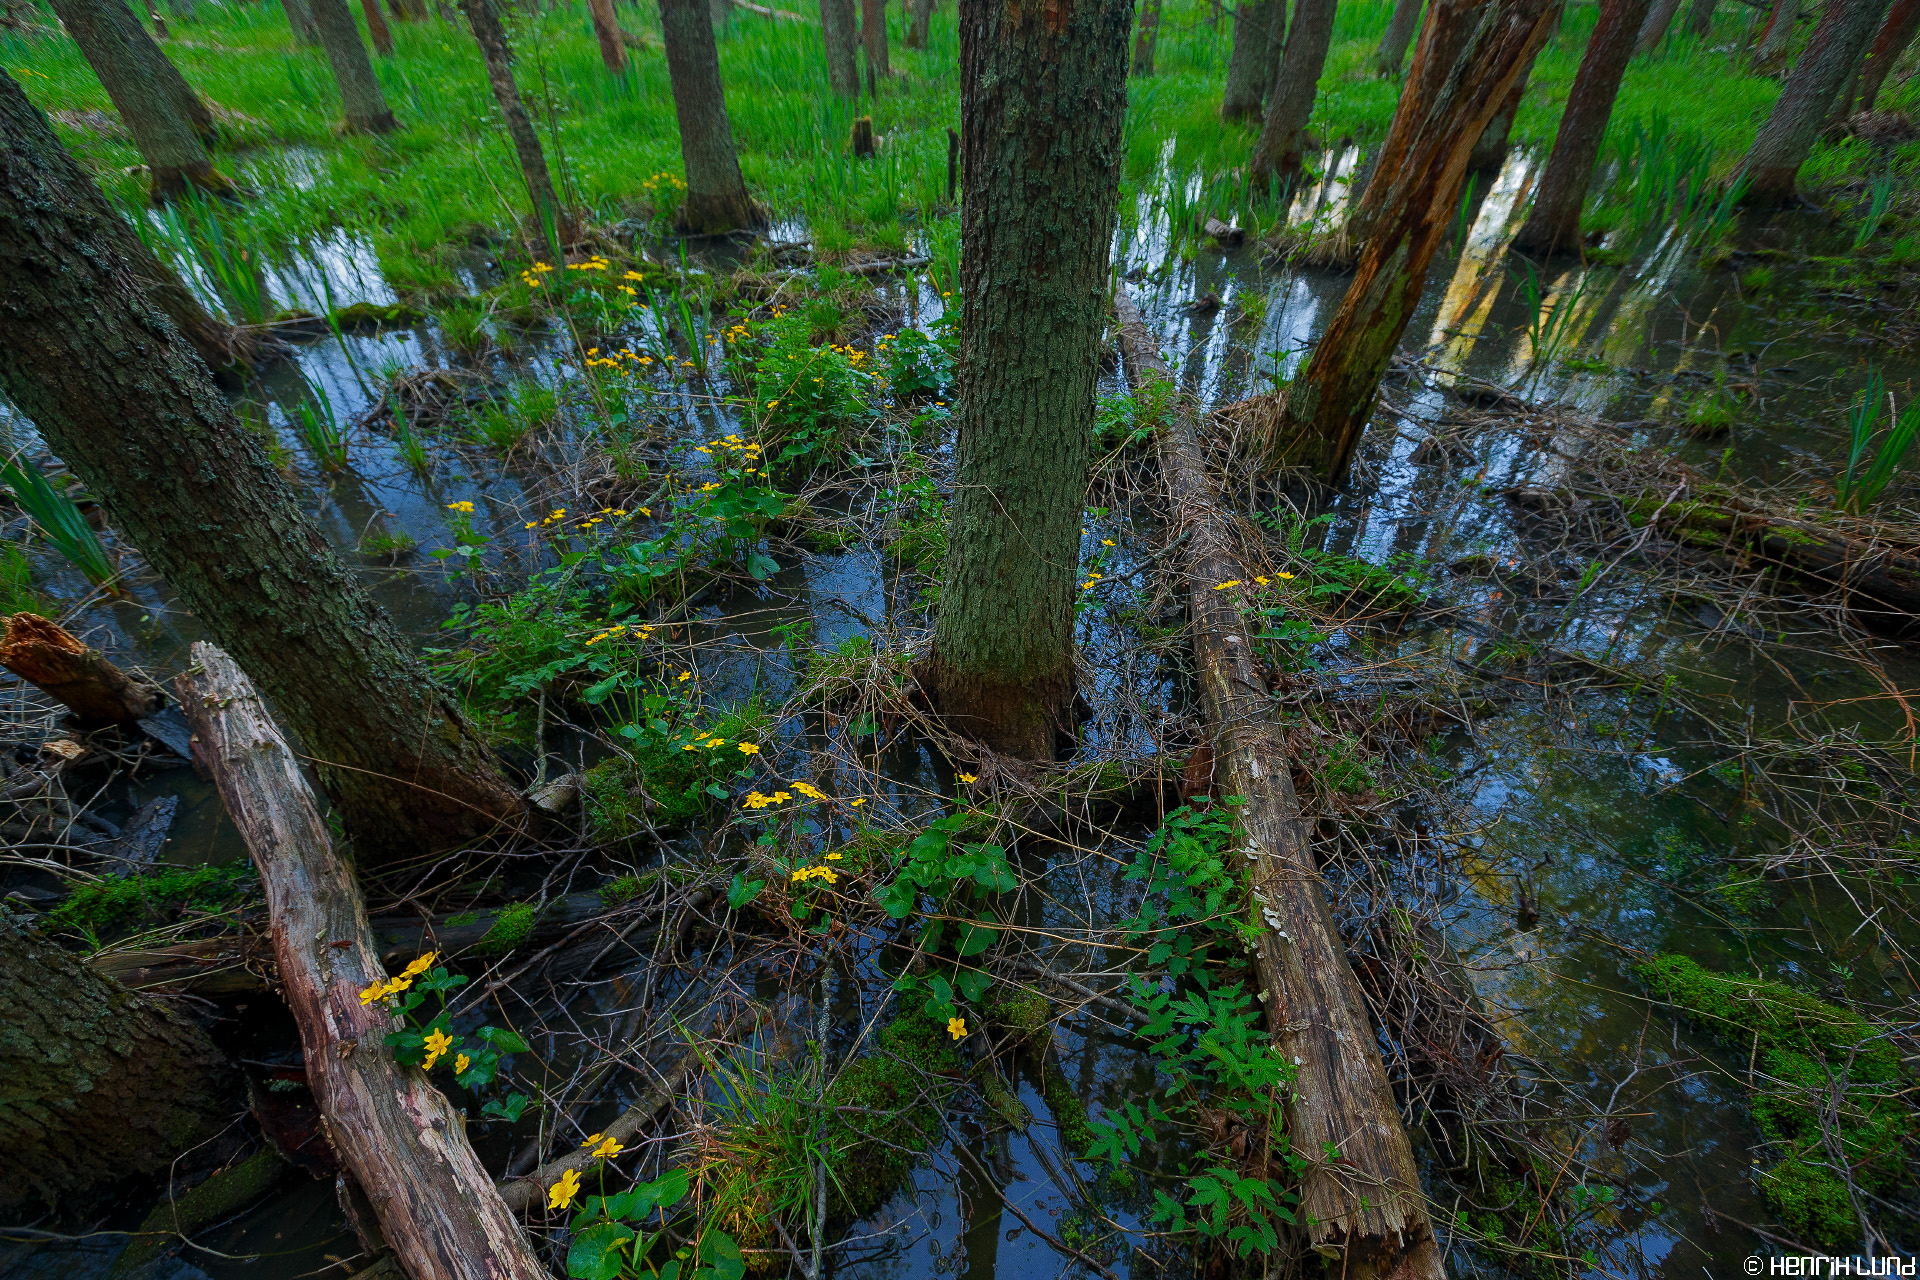 Marsh marigold in the swamp. Liljendal, Lovisa, May, 2014.